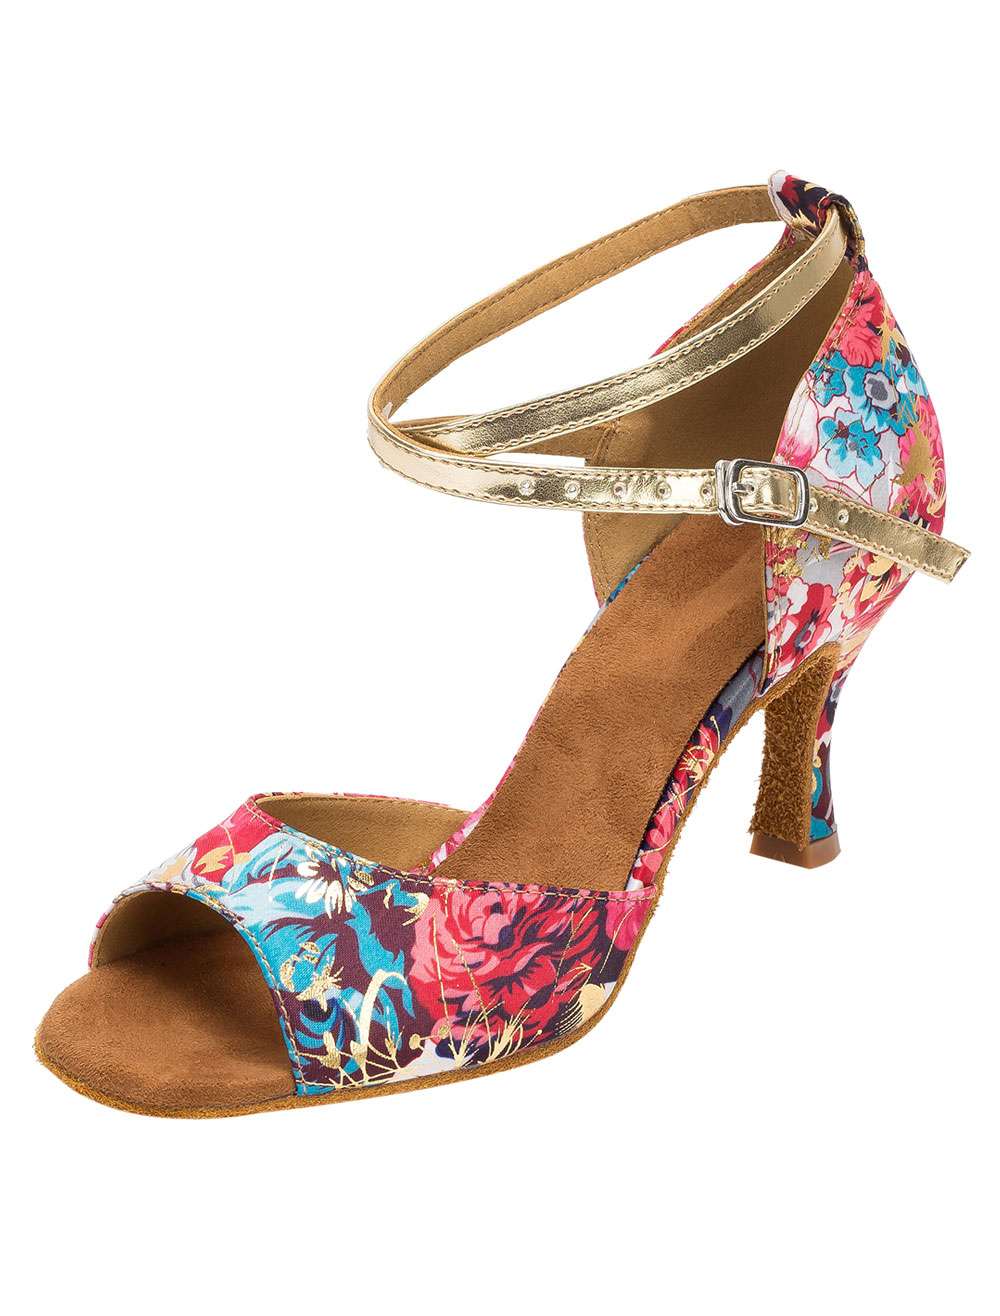 Ballroom Dance Shoes Floral Print Women's Vintage Customized High Heel Dance Shoes